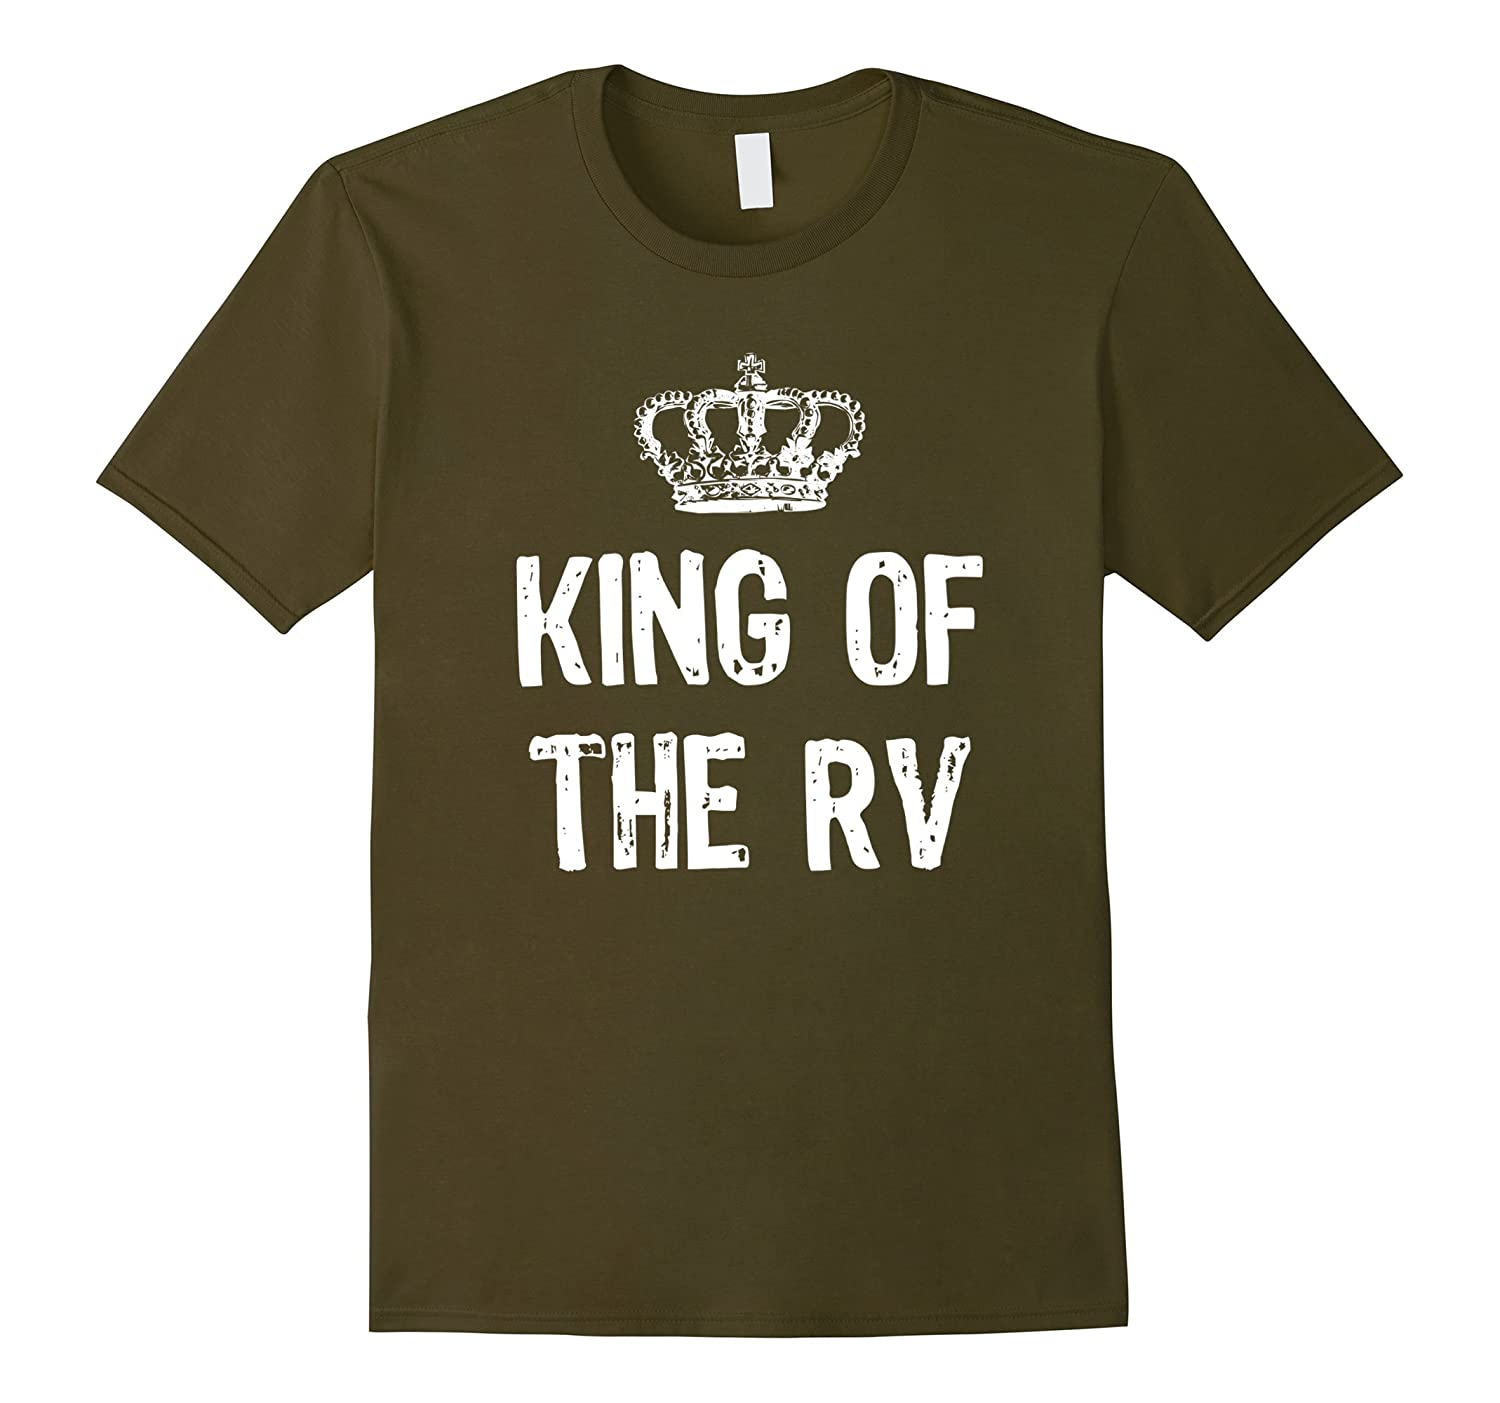 King Of The RV Camping T-Shirt